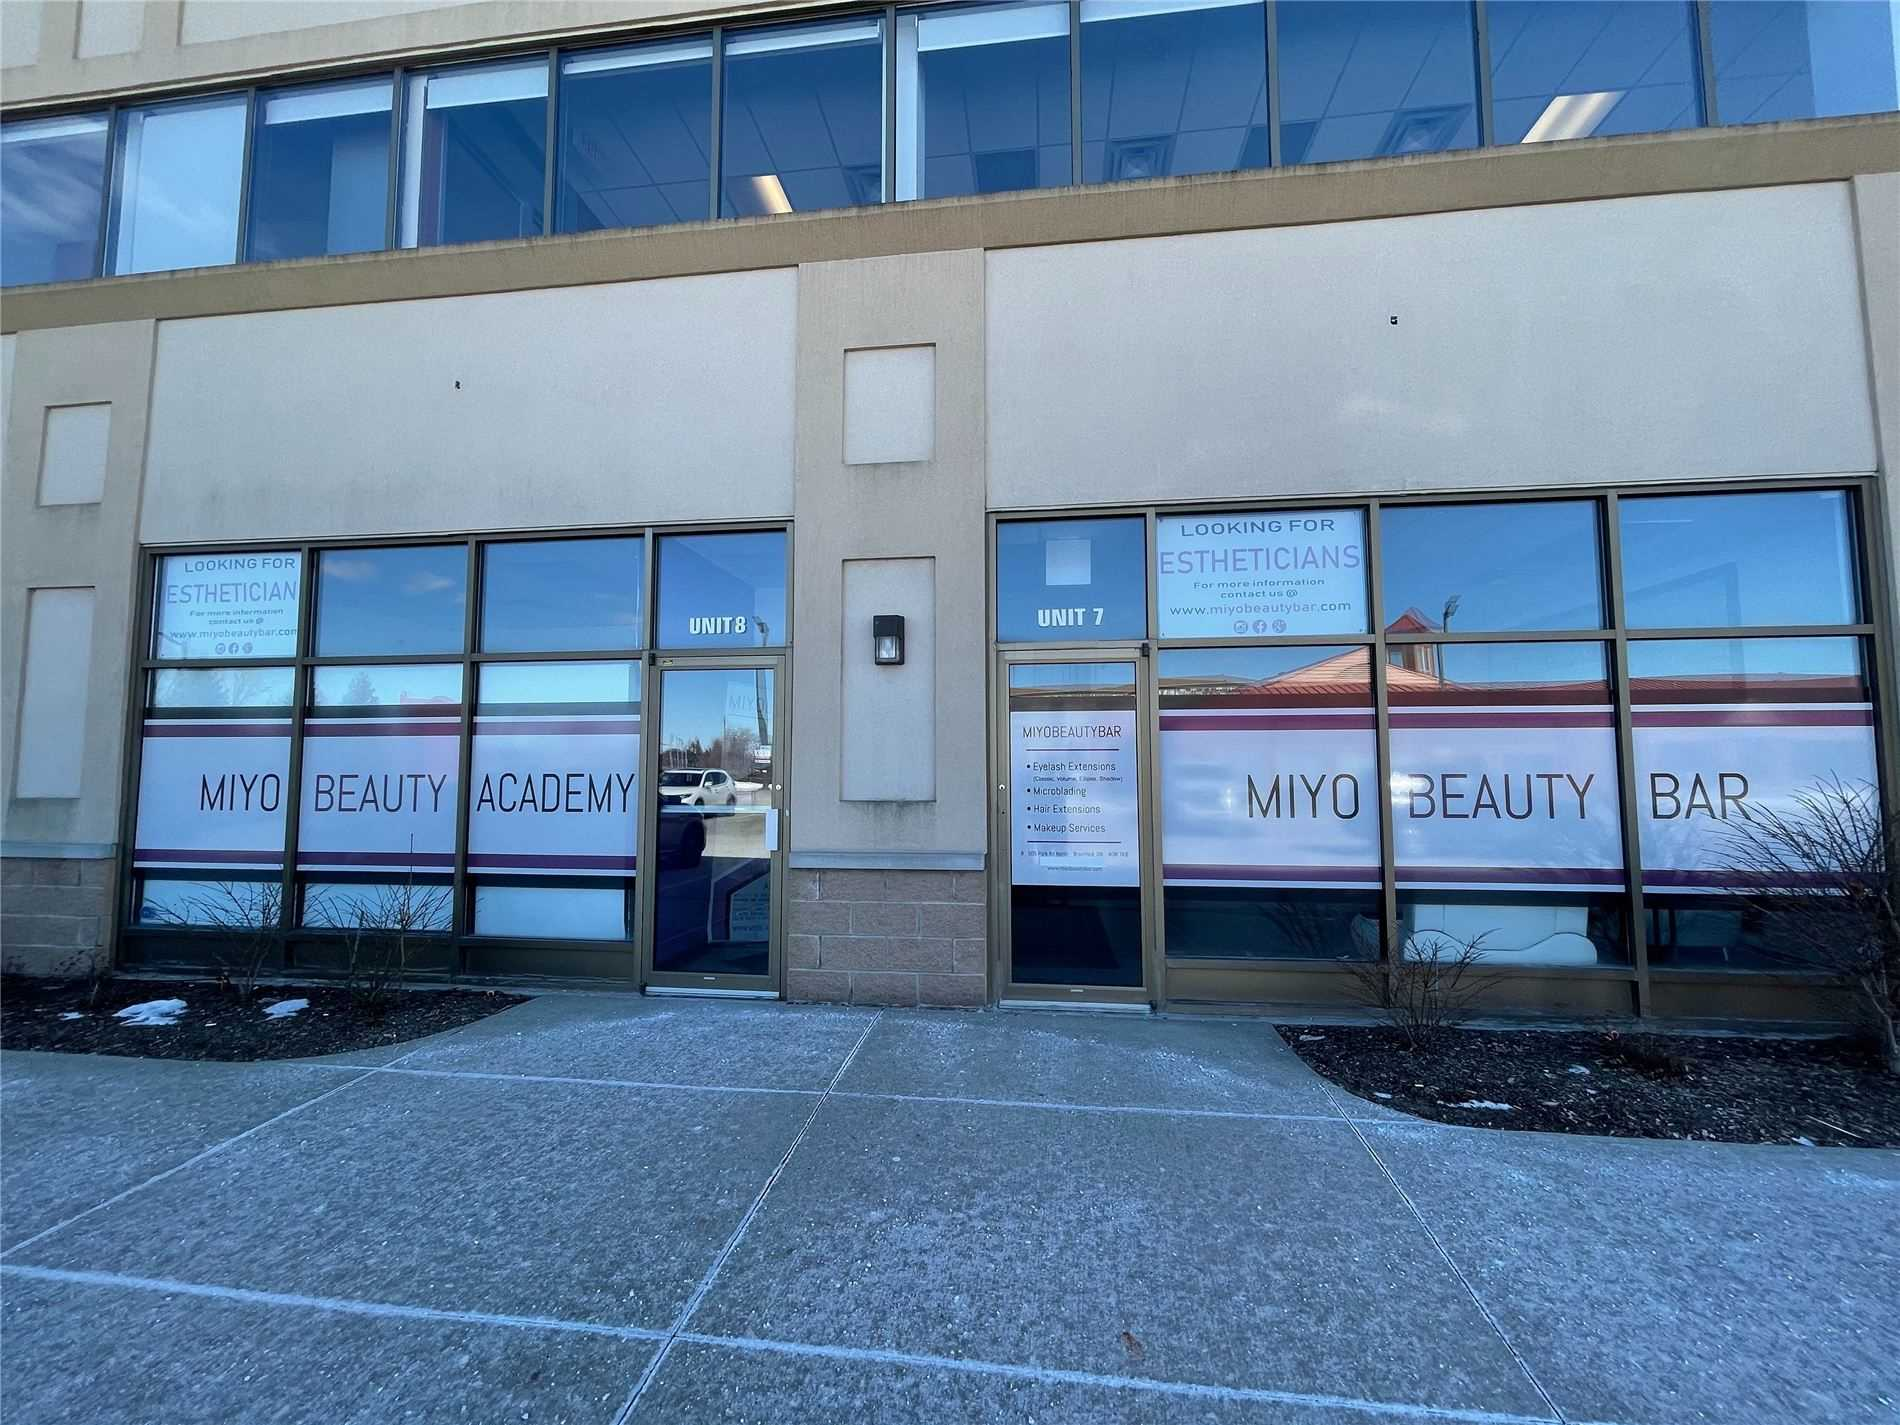 Commercial/retail For Lease In Brant , ,Commercial/retail,For Lease,107,Park